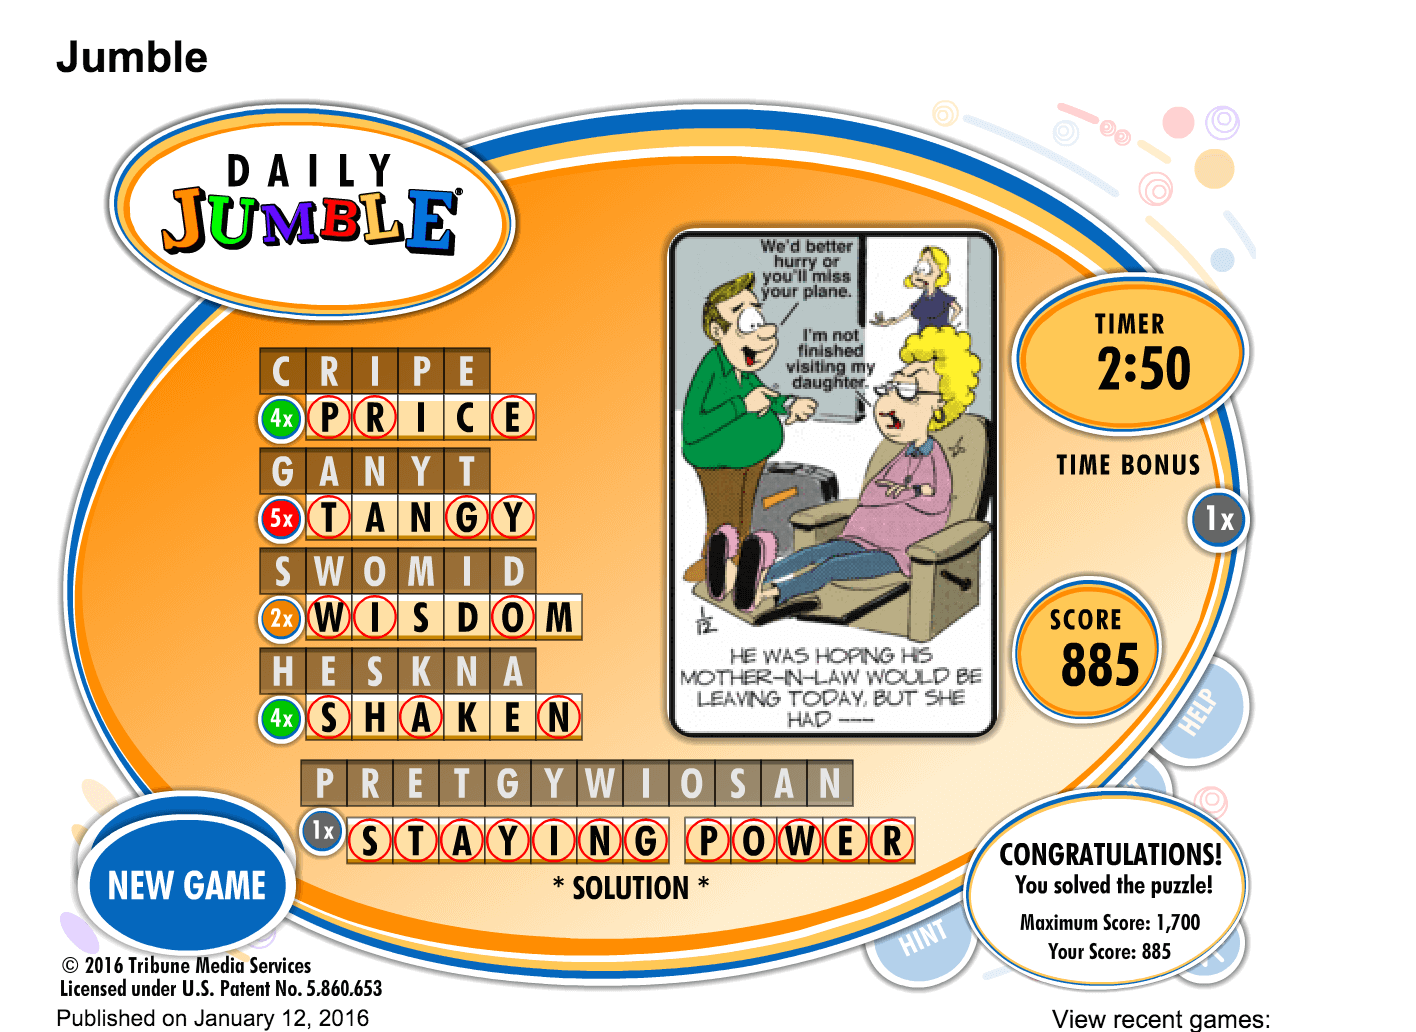 Today's Jumble! game